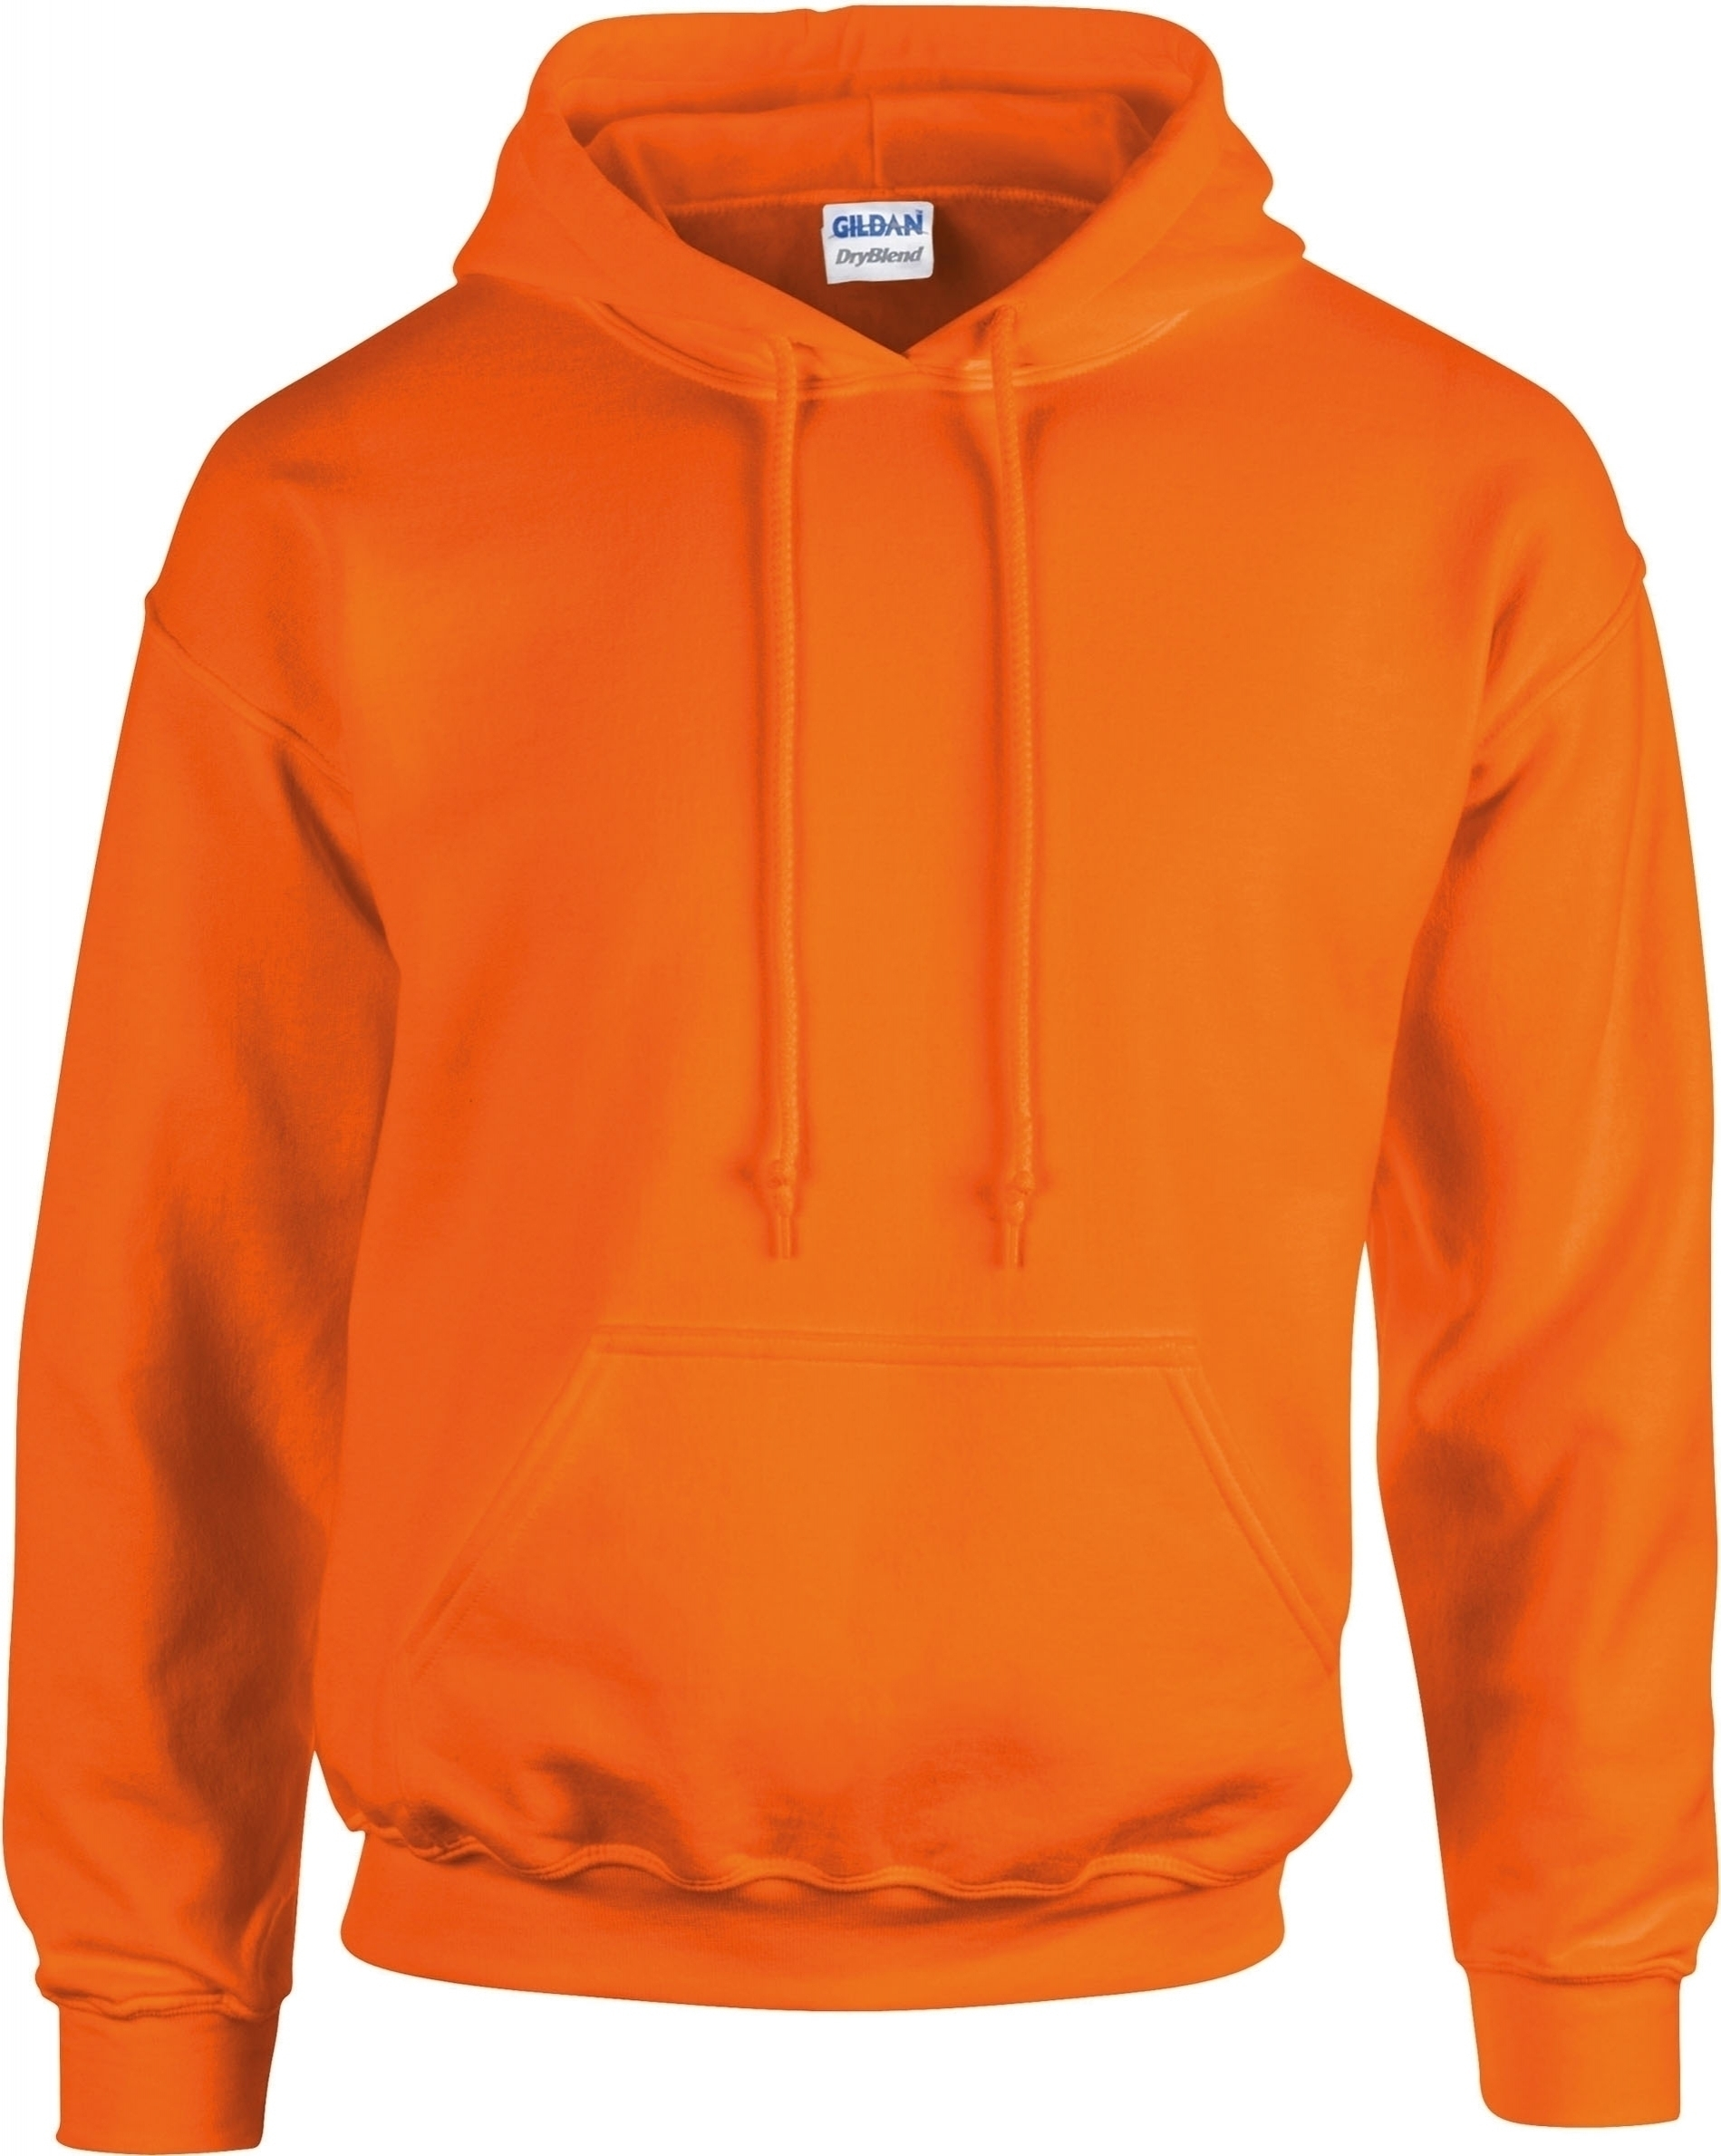 SWEAT-SHIRT CAPUCHE HEAVY BLEND Orange Safety Orange